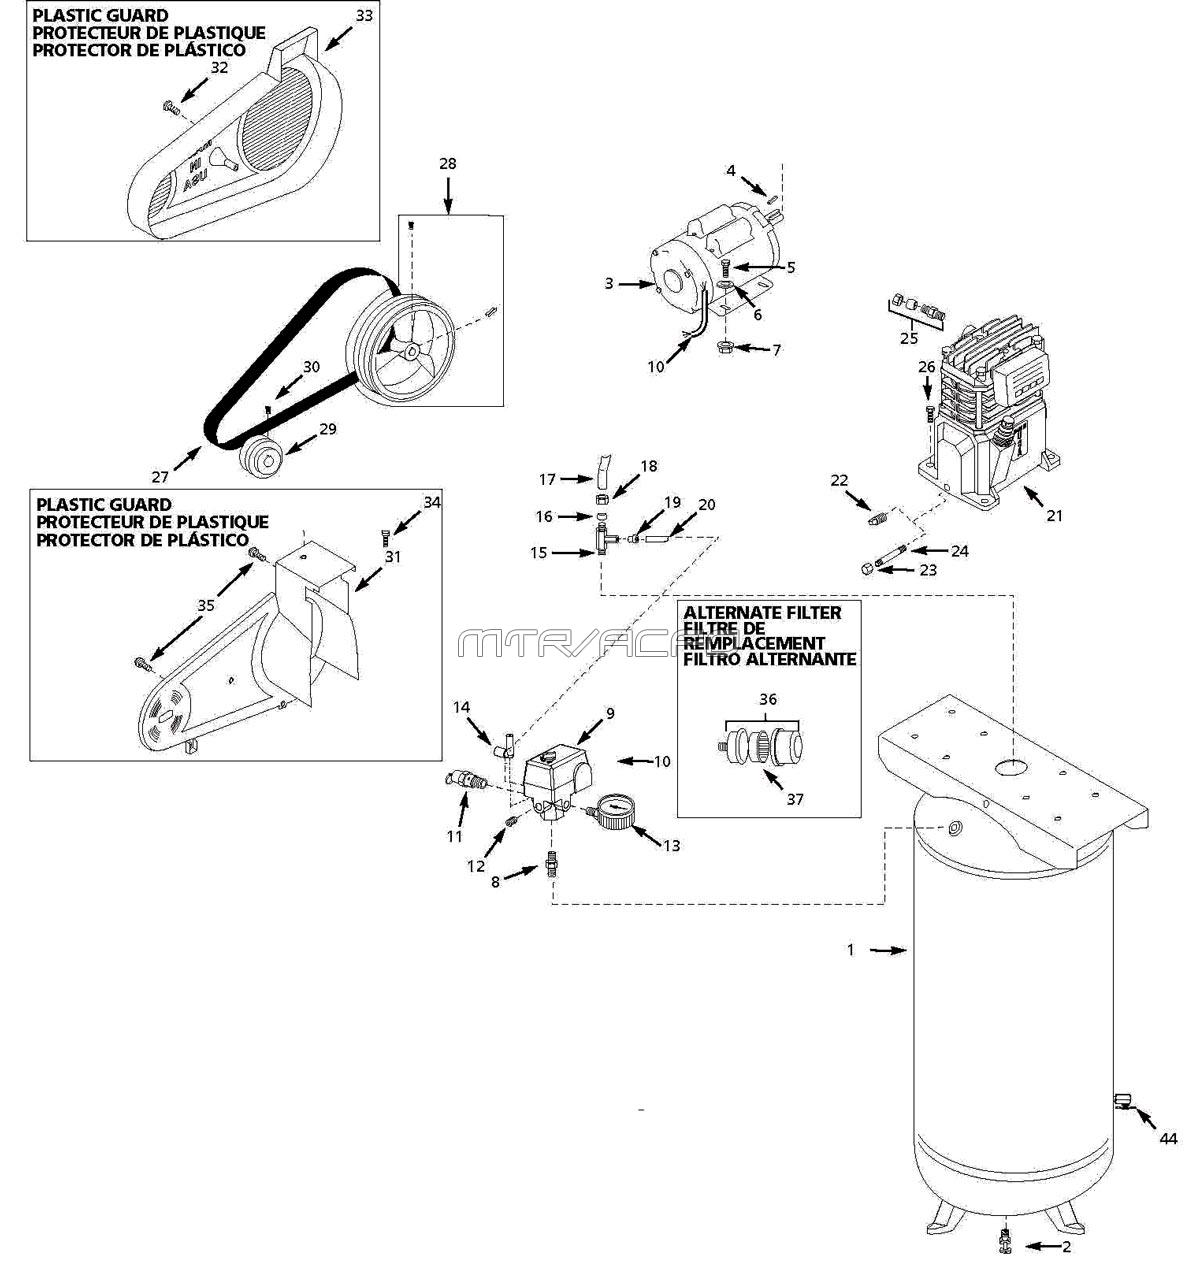 hight resolution of husky vt631403aj air compressor parts husky mower parts diagram husky air pressor wiring diagram